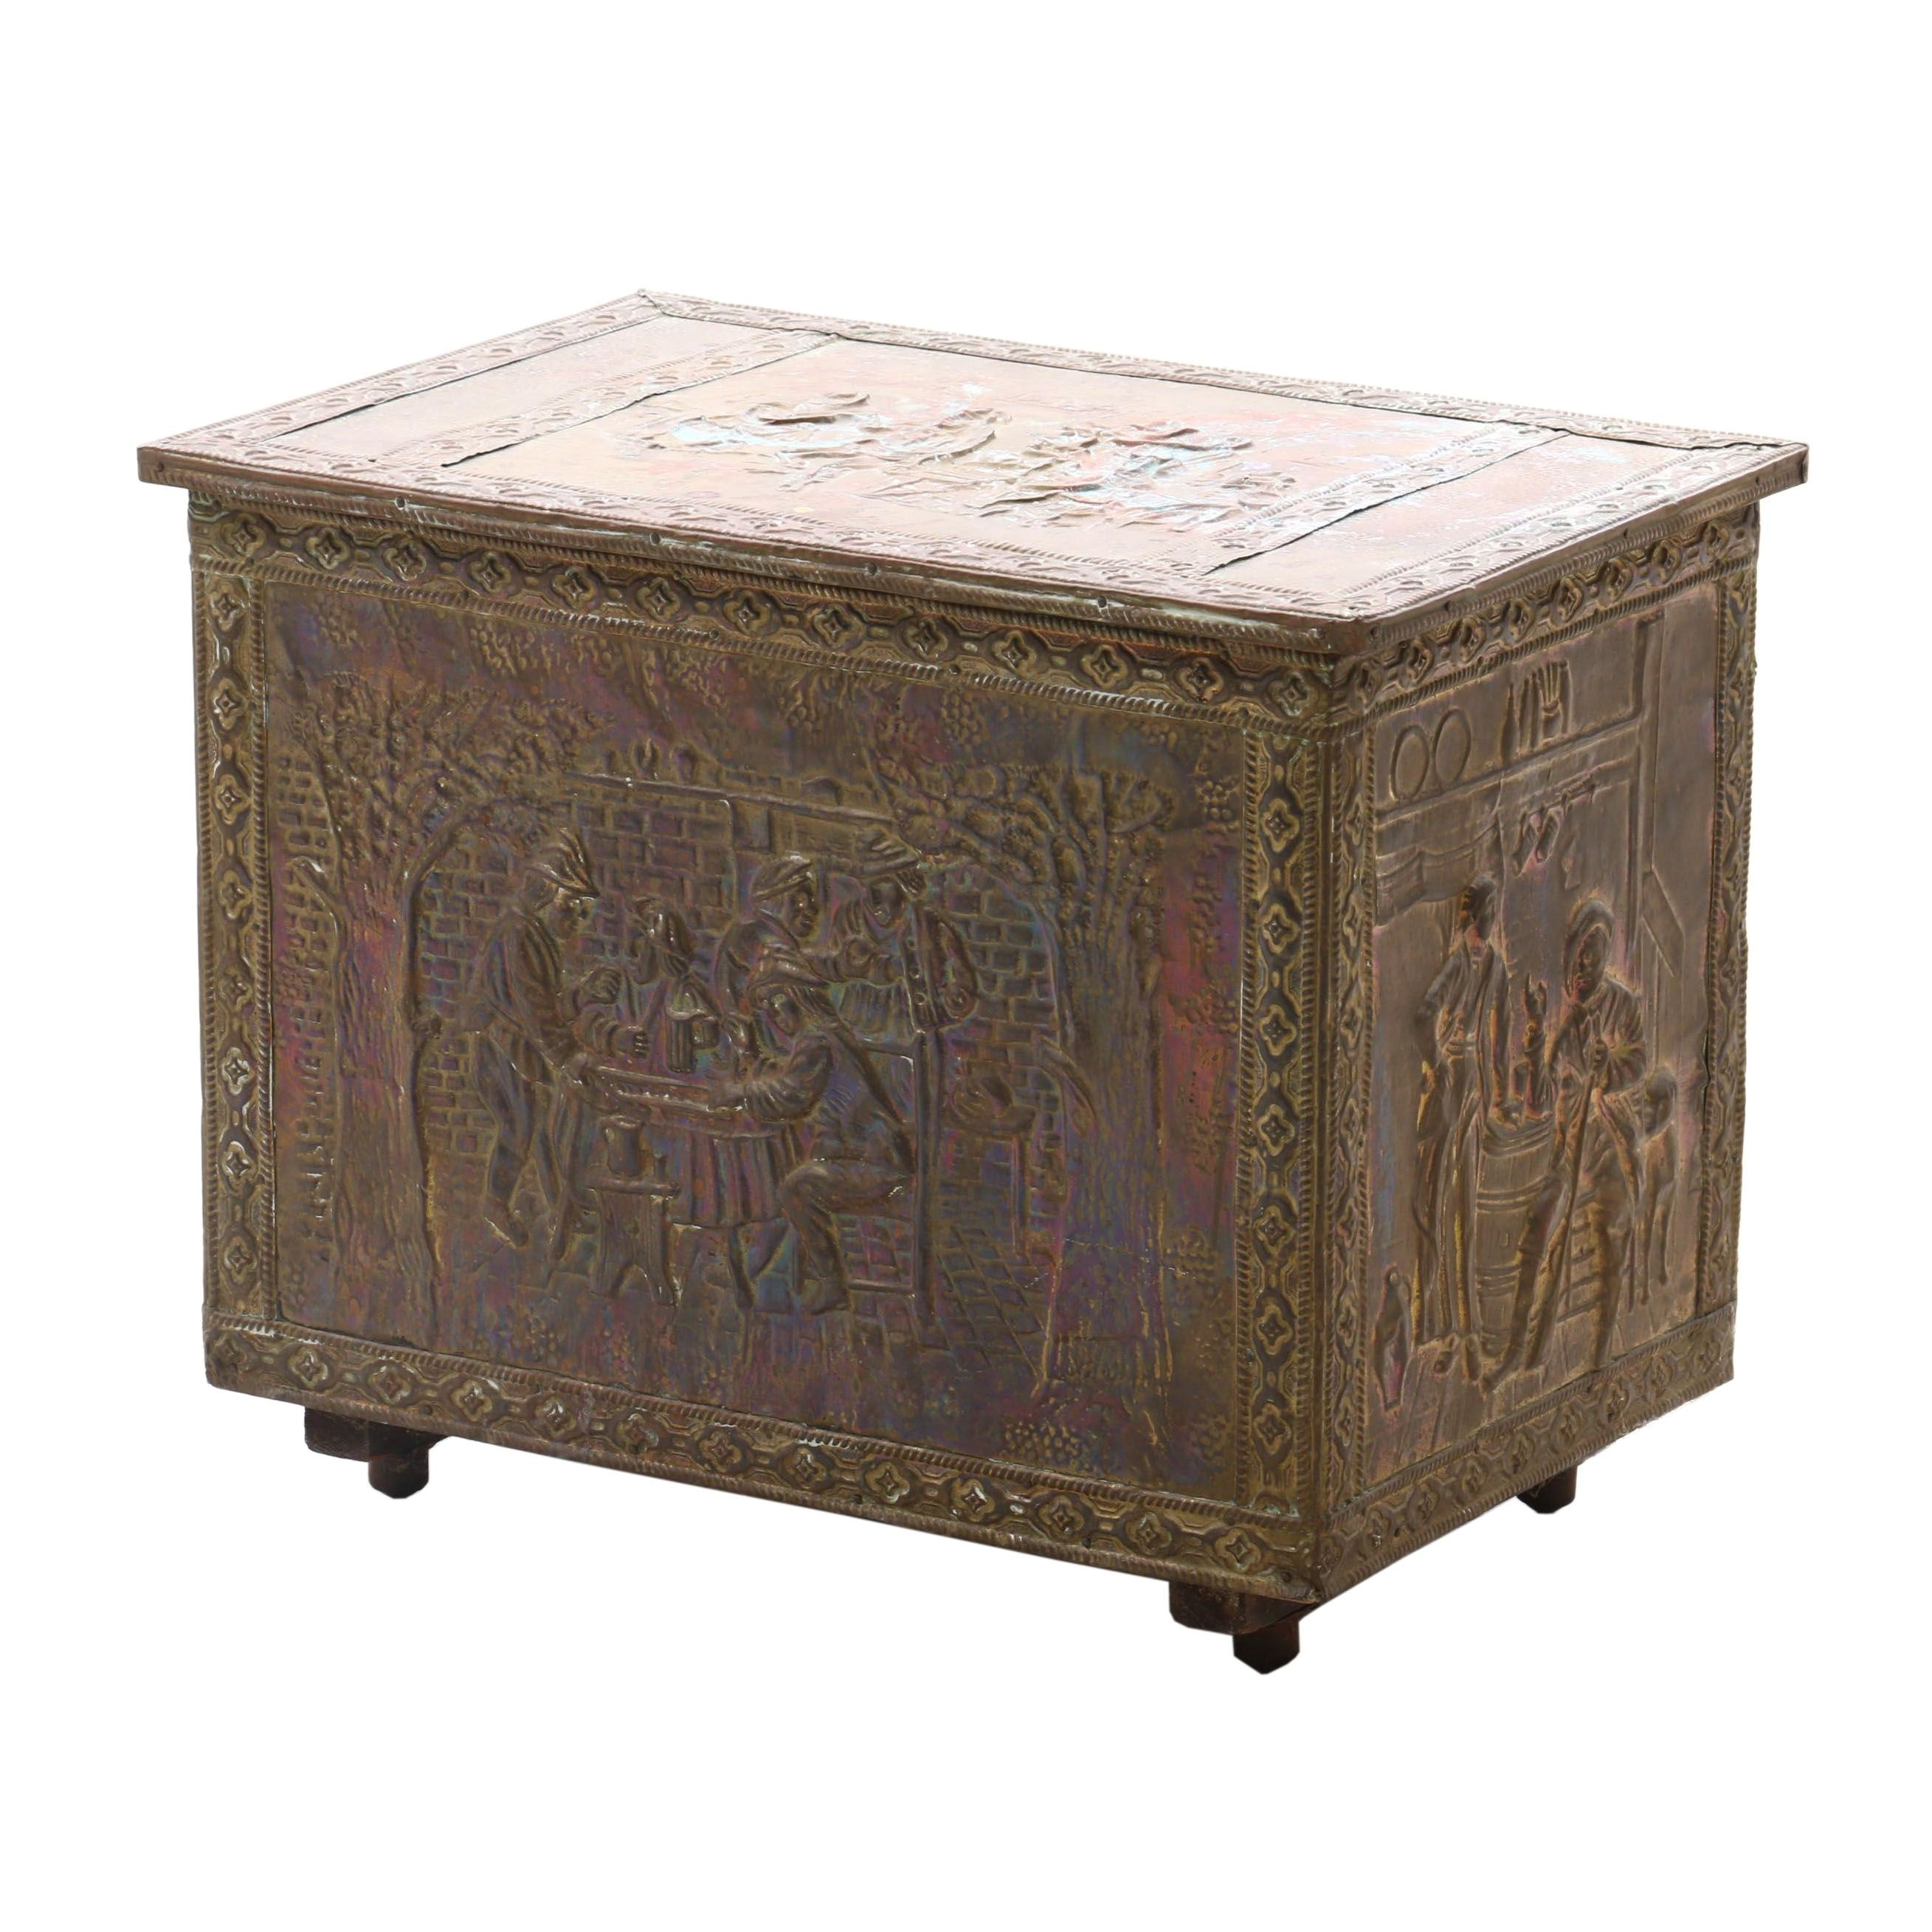 Brass Clad Copper and Metal Repoussé Kindling Box